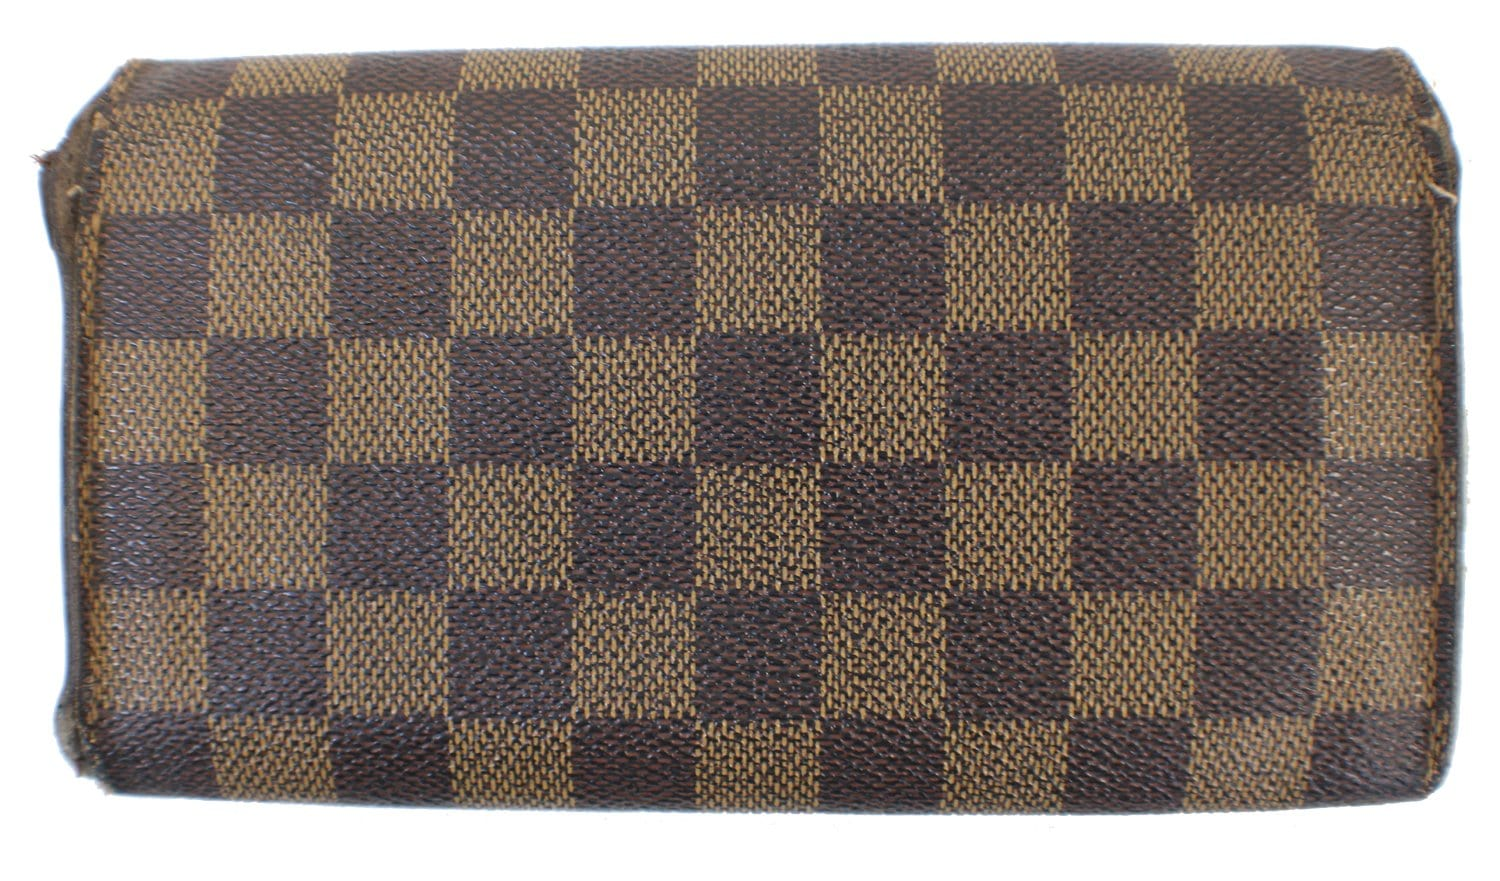 3d4dc39abd9dc Authenic LOUIS VUITTON Damier Ebene Canvas Brown Sarah Wallet CC337 ...